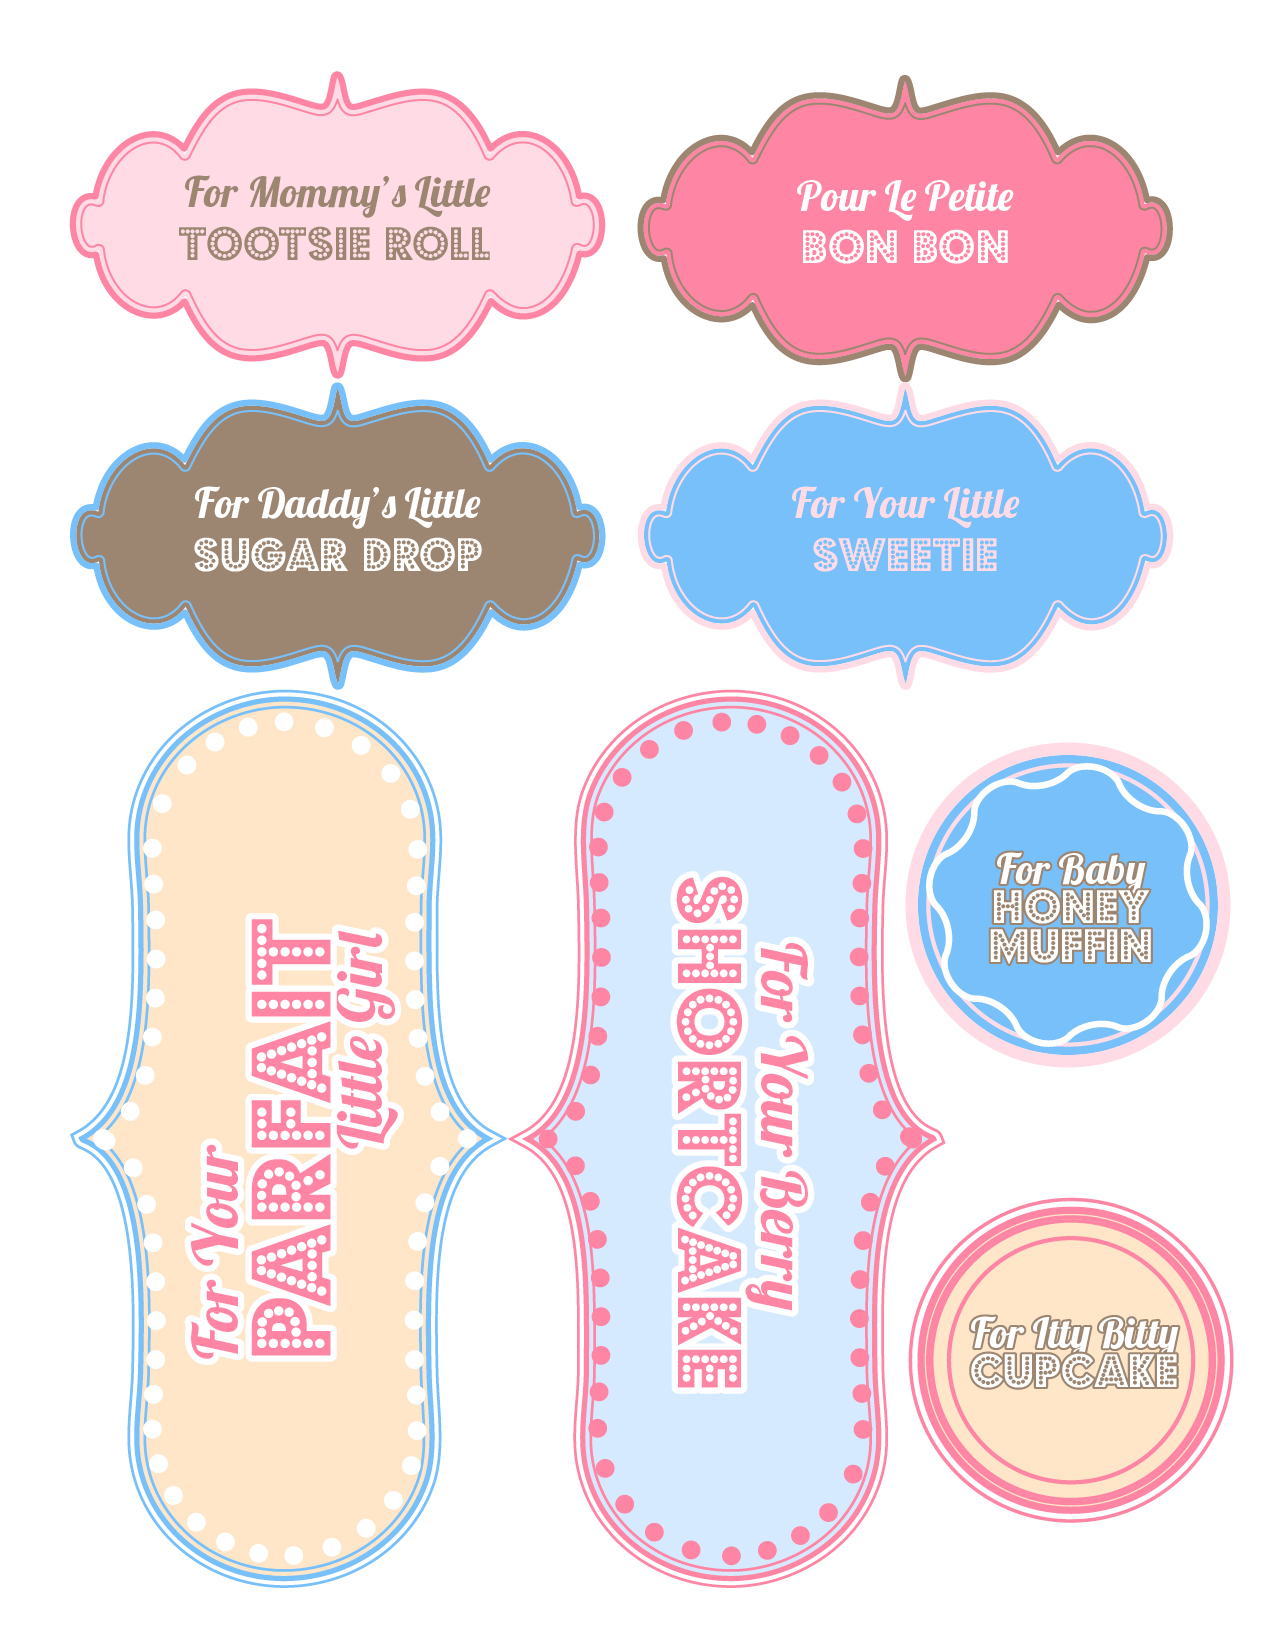 photo about Printable Baby Shower Gift Tags known as Little one Shower Presents - [No cost Printable] - Cute Anne Layouts